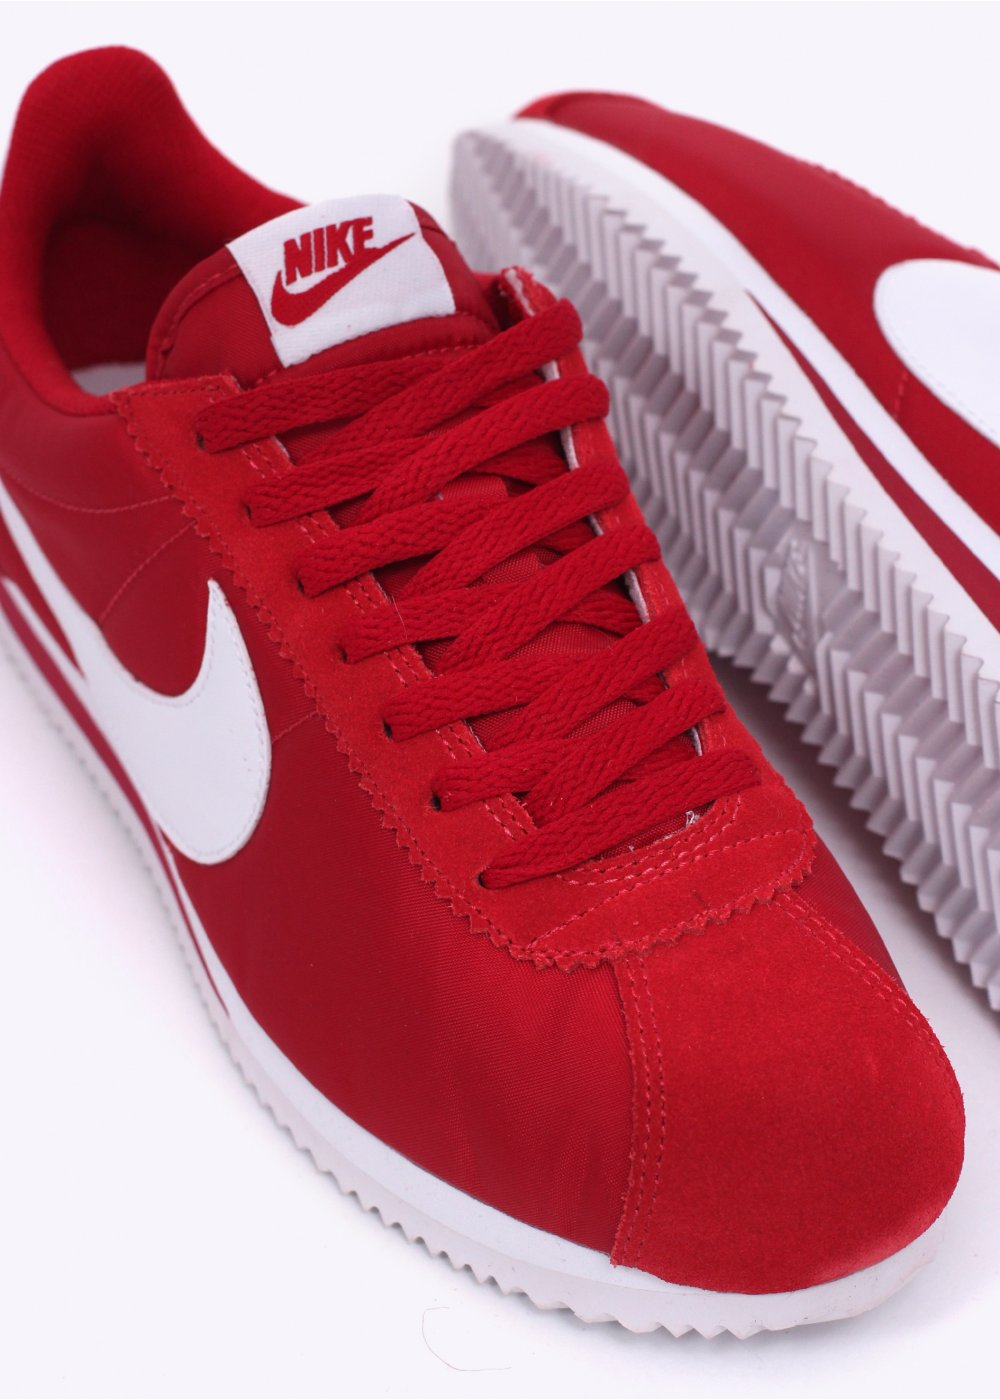 best website 3cb5e d2776 Nike Footwear Classic Cortez Nylon Trainers - Gym Red / White